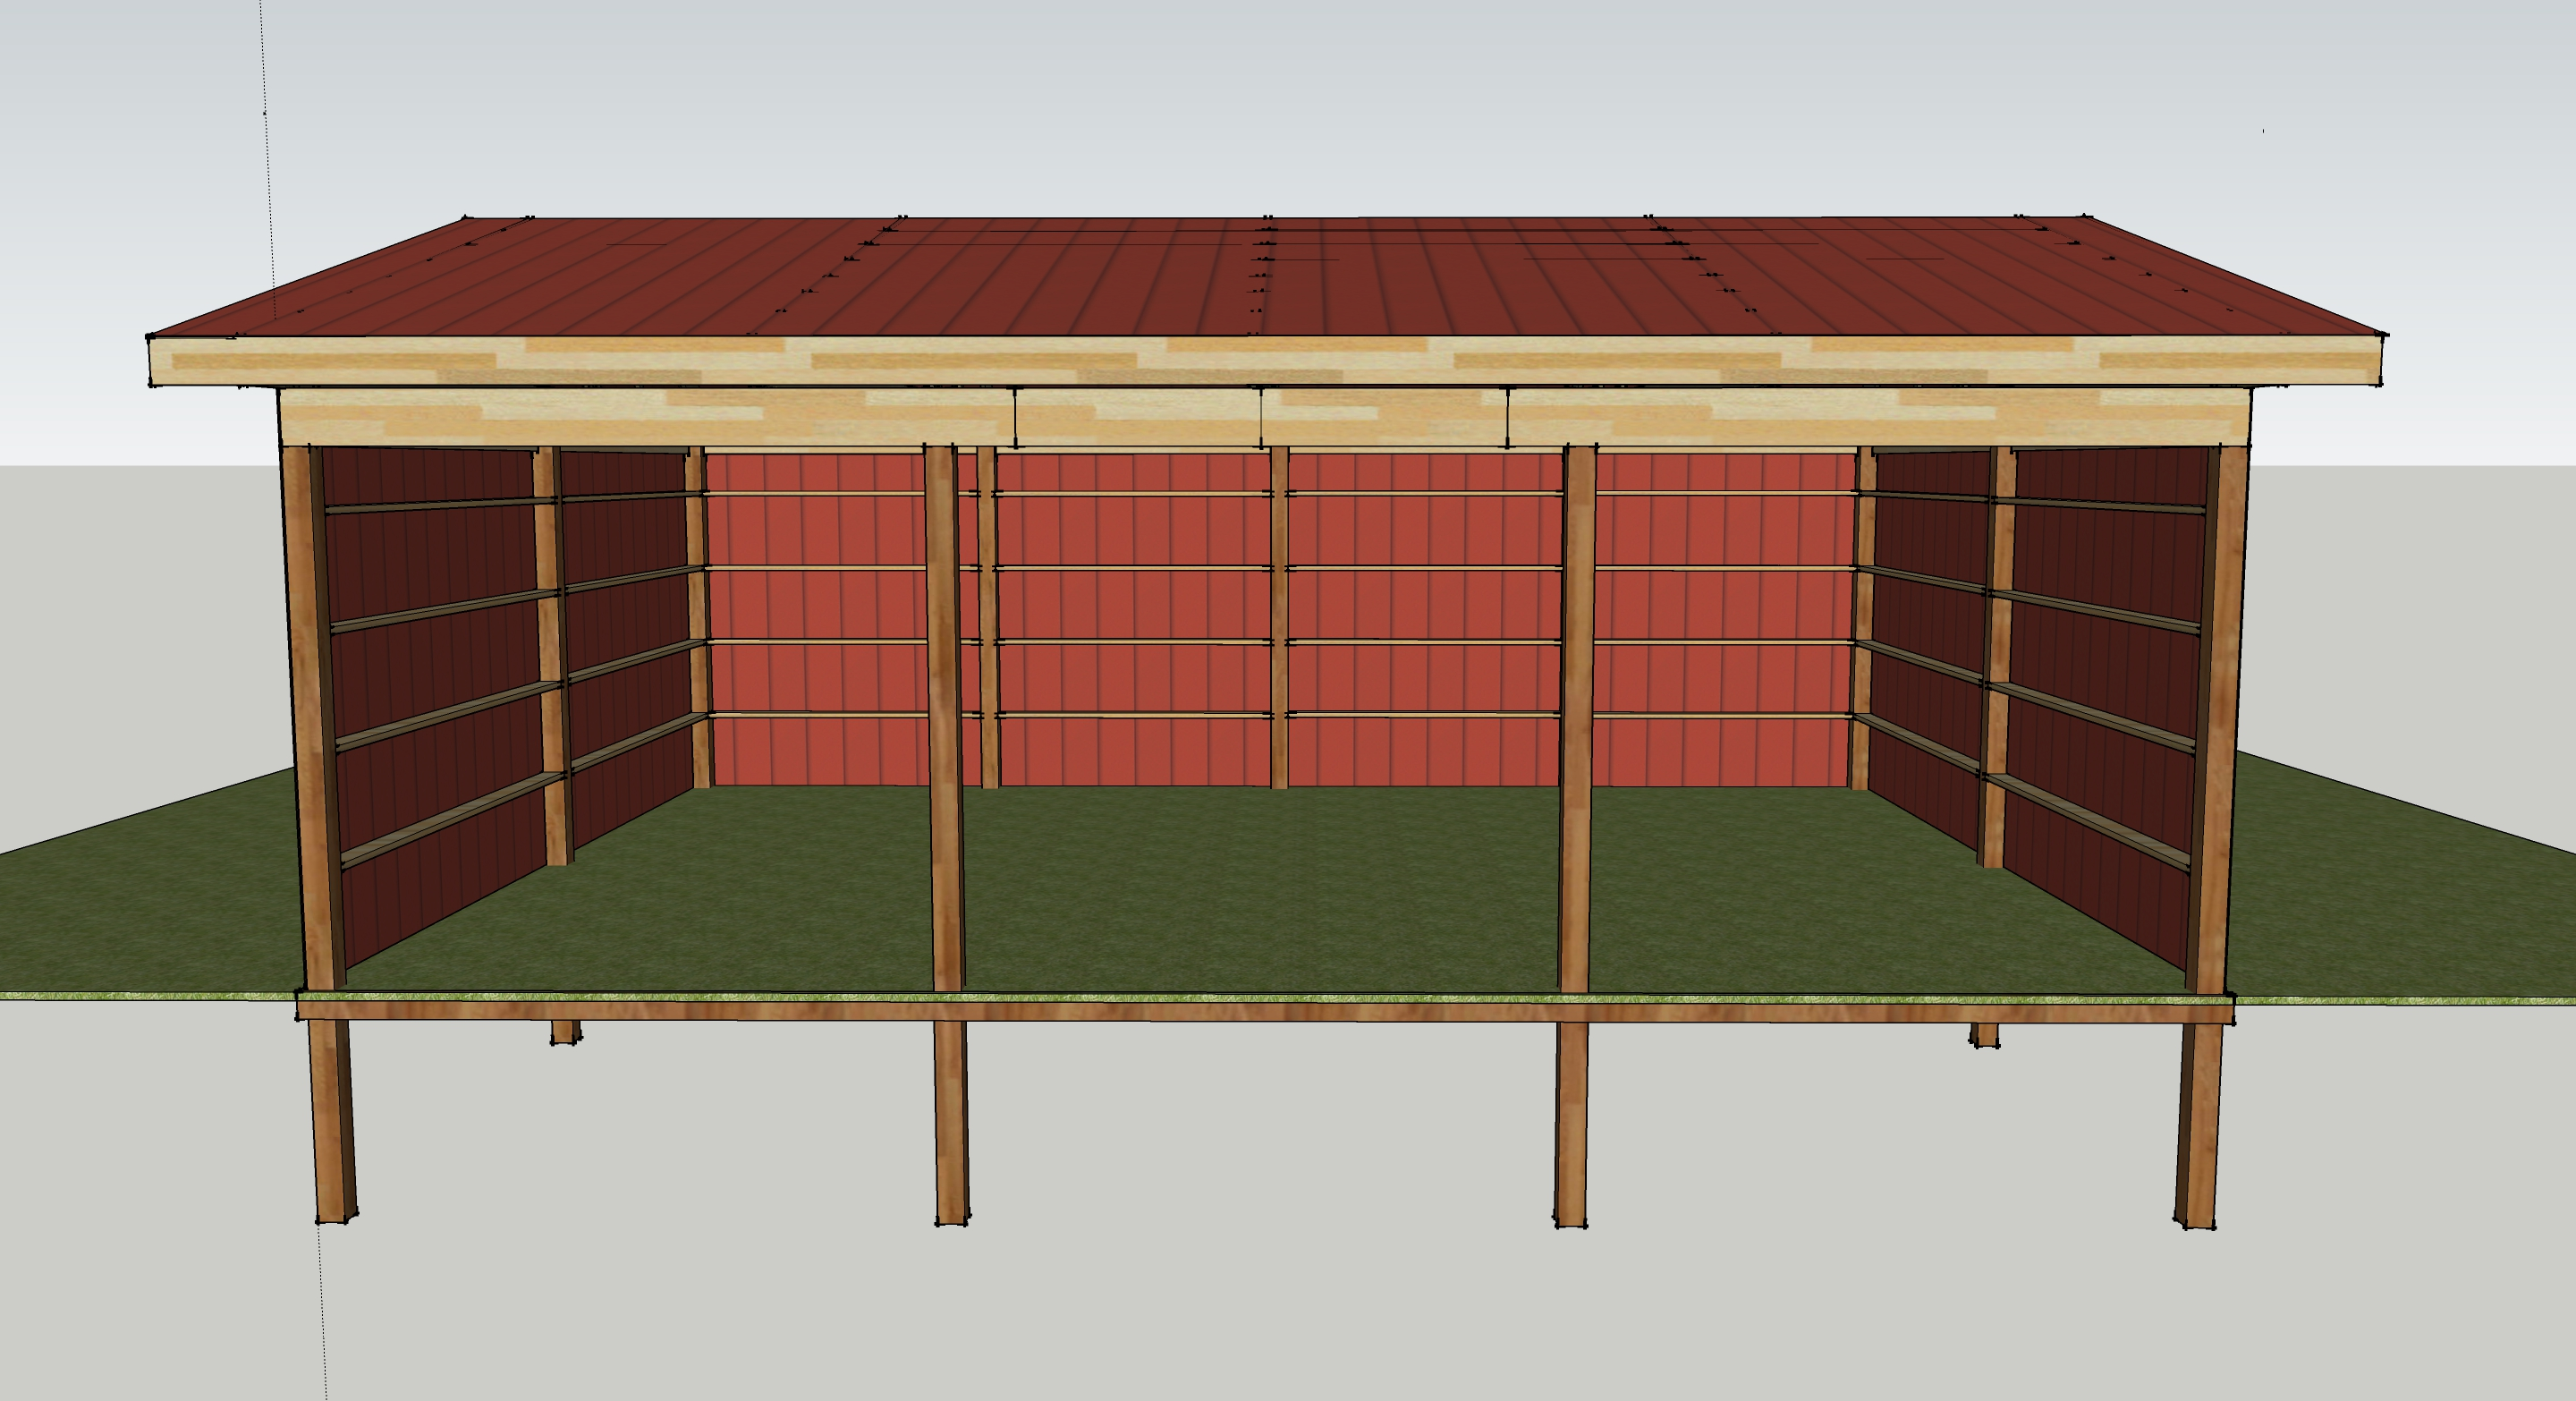 Pole barn plans 24 x 32 joy studio design gallery best for How to design a pole barn